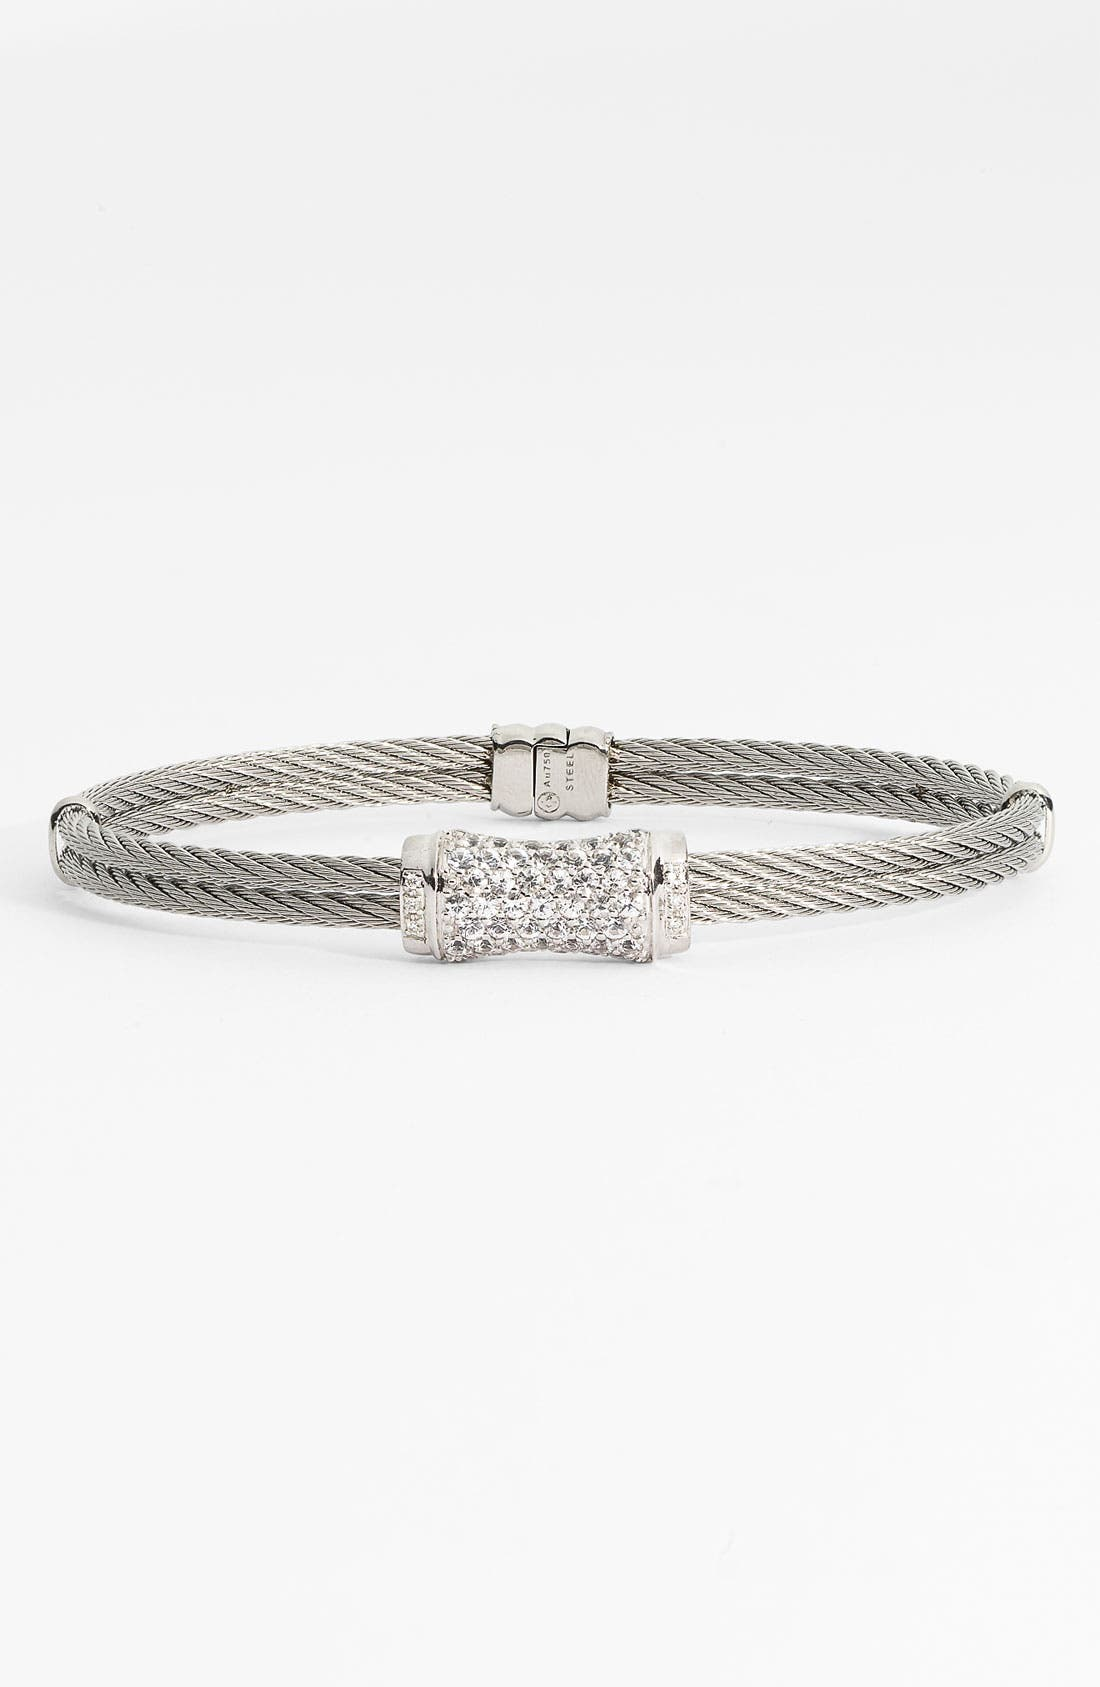 Main Image - ALOR® White Sapphire Station Cable Bangle (Nordstrom Exclusive)